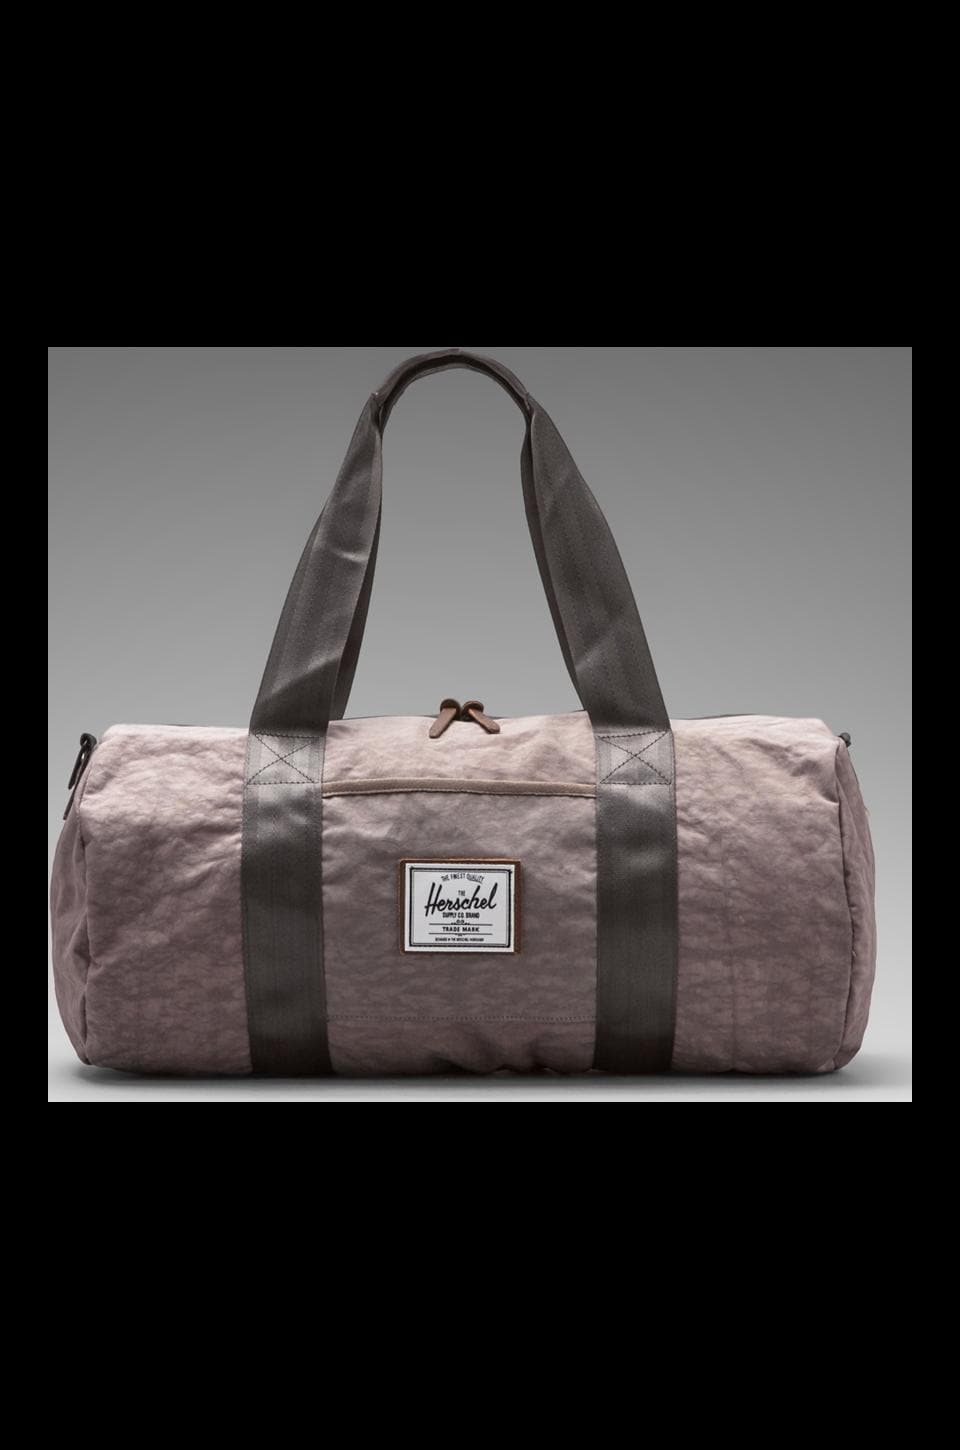 Herschel Supply Co. Sac de voyage Collection Sutton Bad Hills en Gris